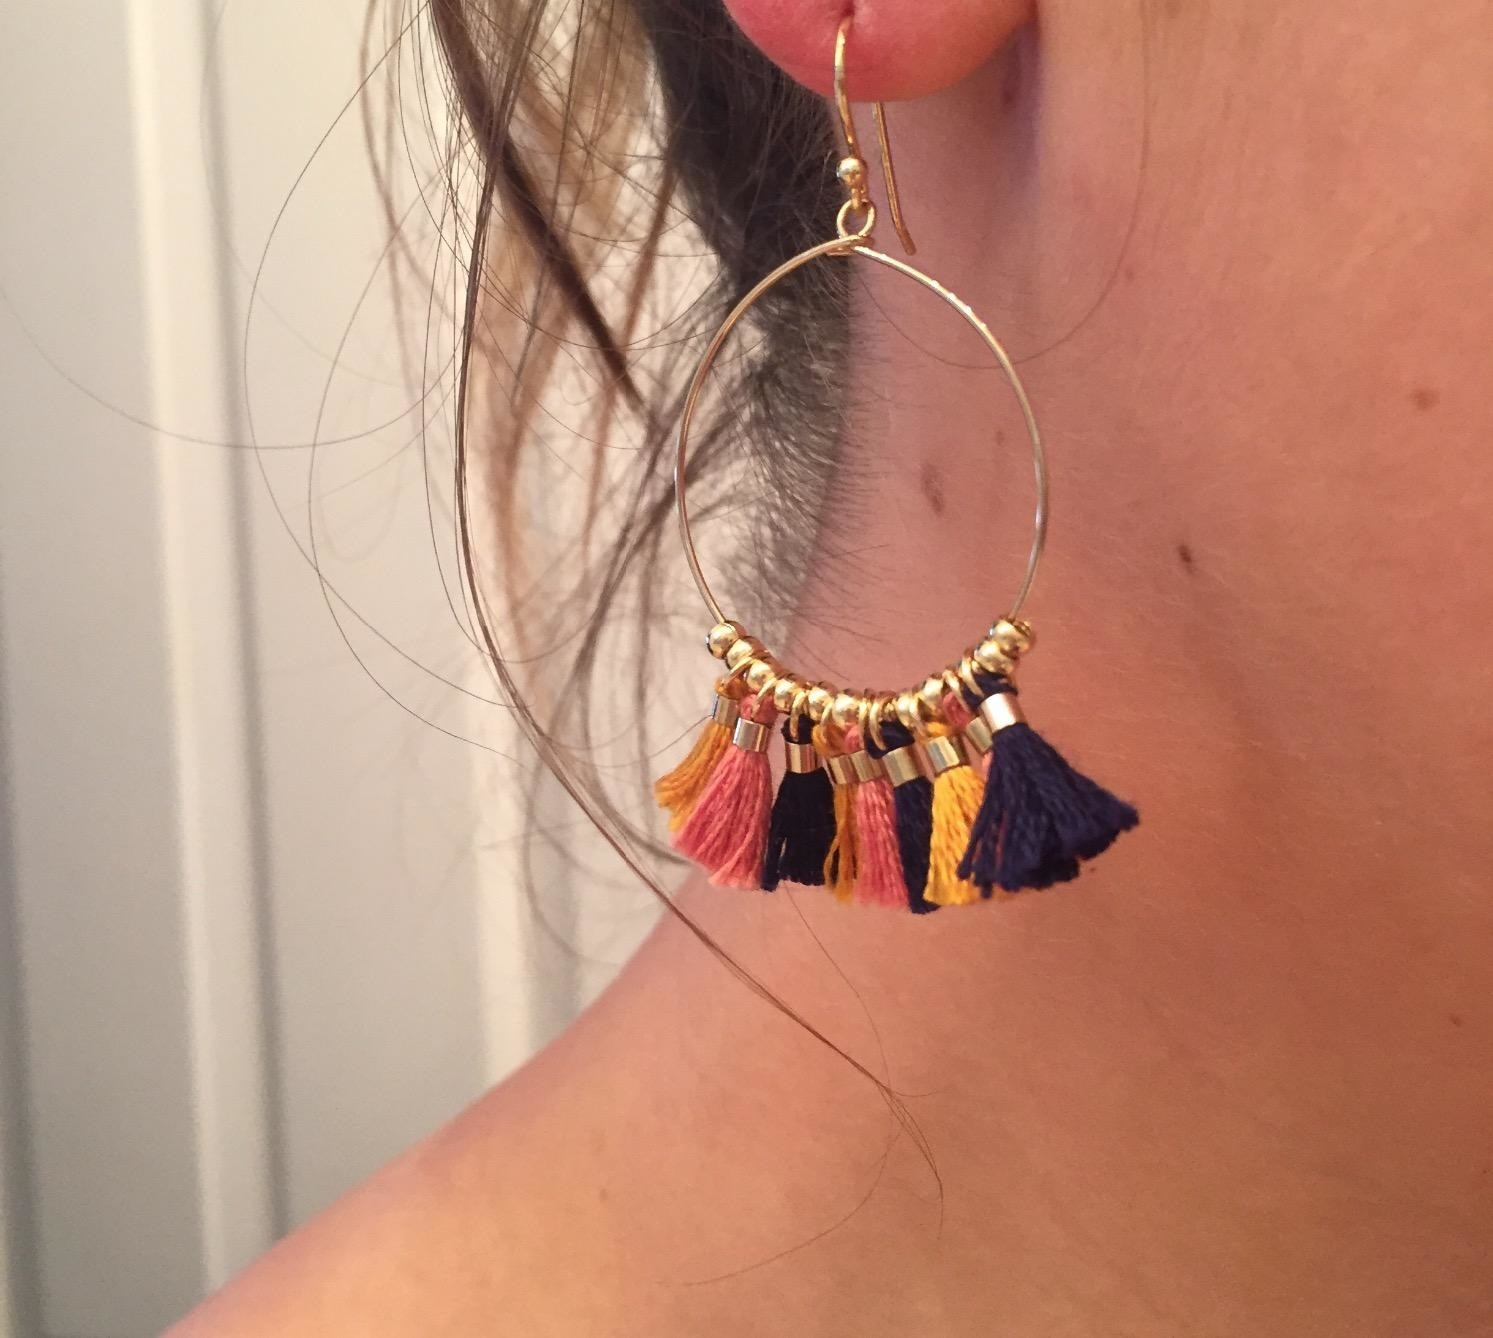 the autumn leaf tassel earring hanging from a reviewer's ear